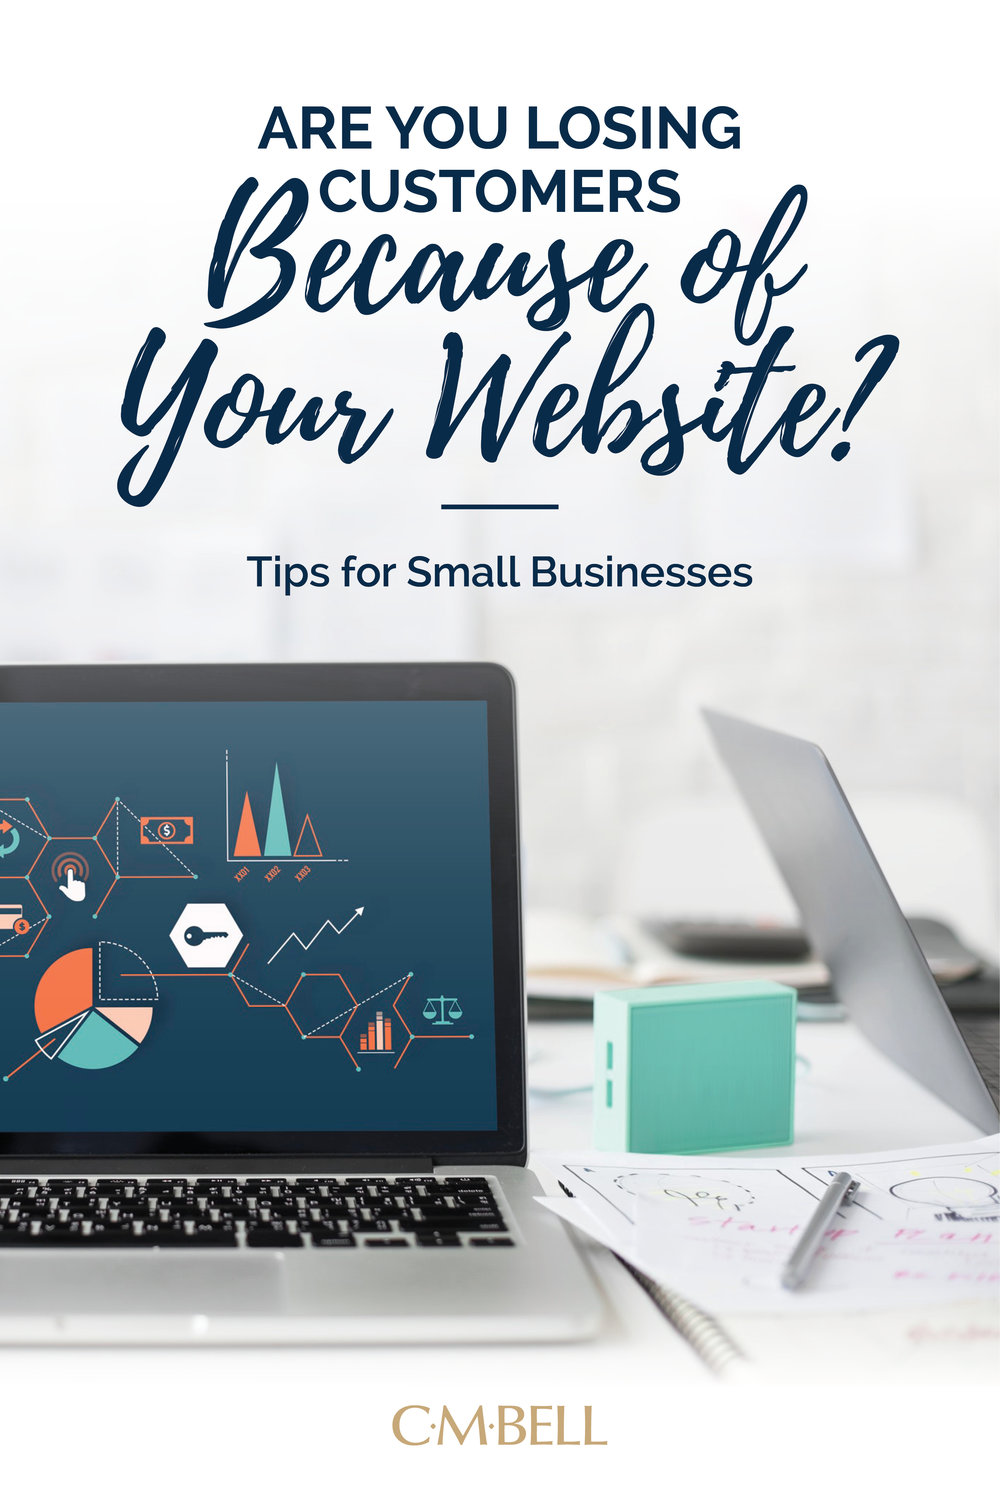 are-you-losing-customers-because-of-your-website.jpg